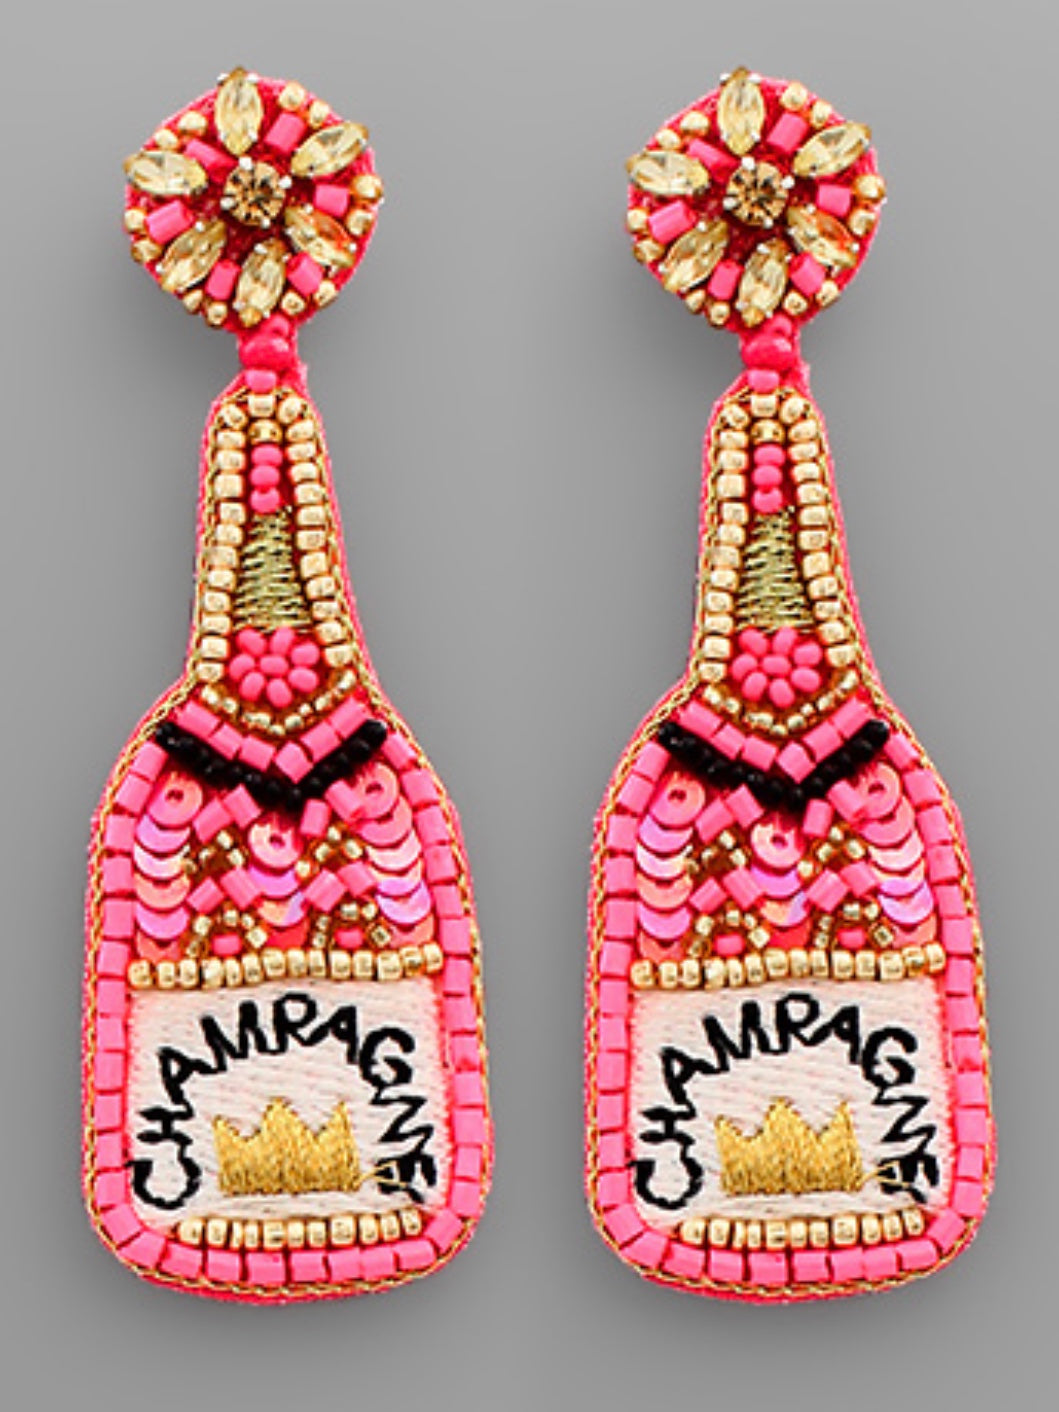 Pink Crown Champagne Bottle Earrings